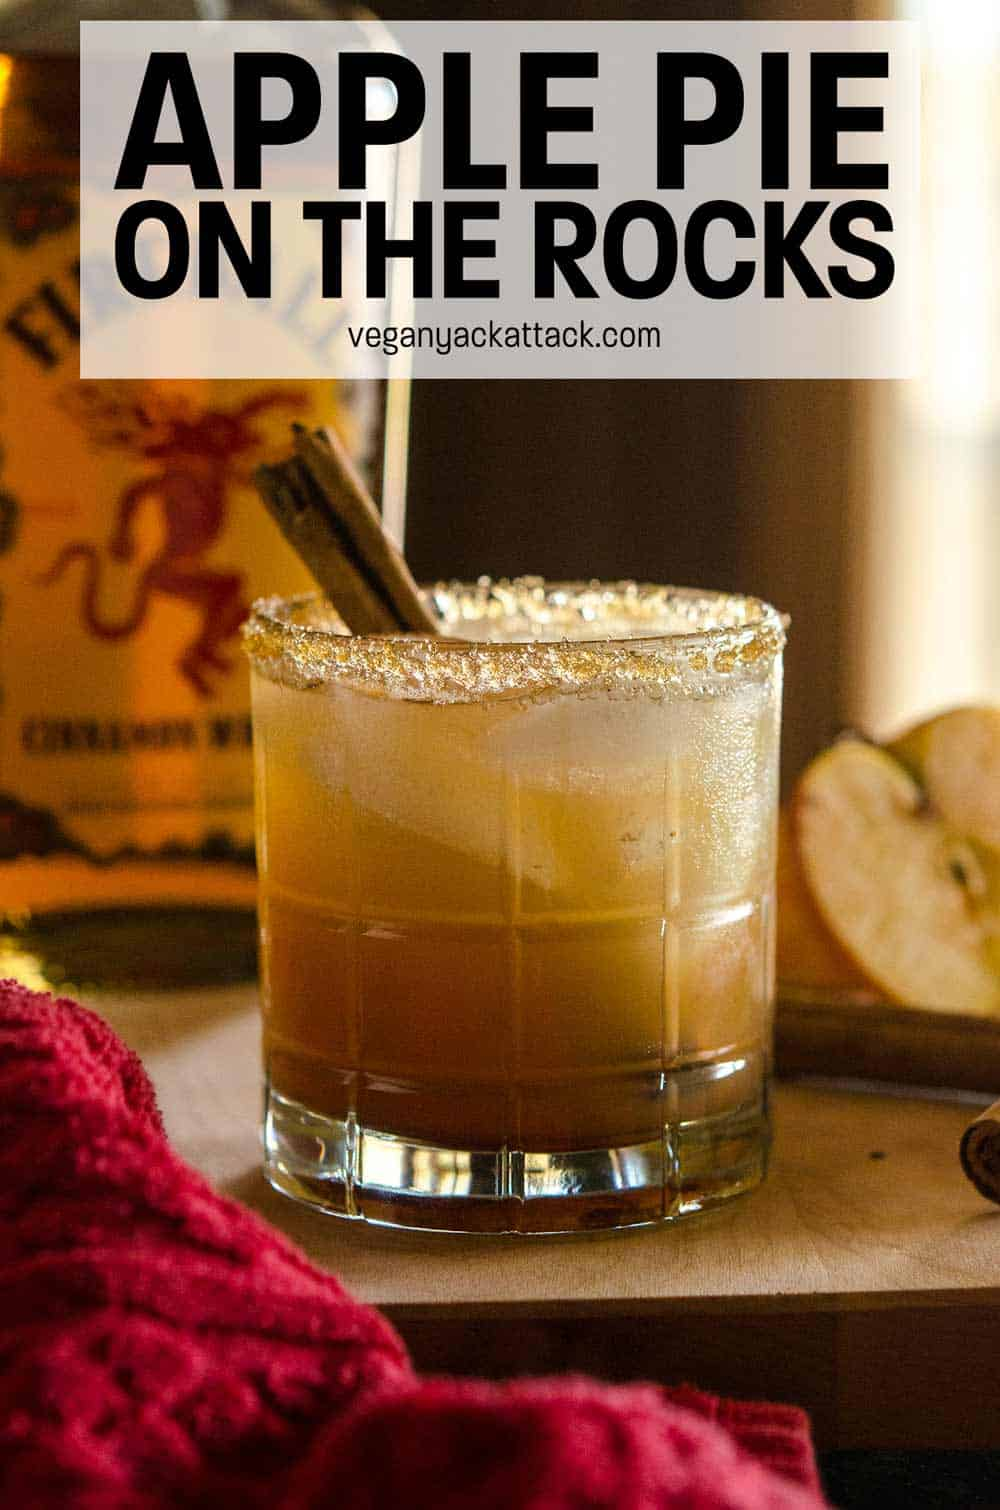 Glass of apple pie on the rocks with sugar rim and cinnamon stick on a cutting board